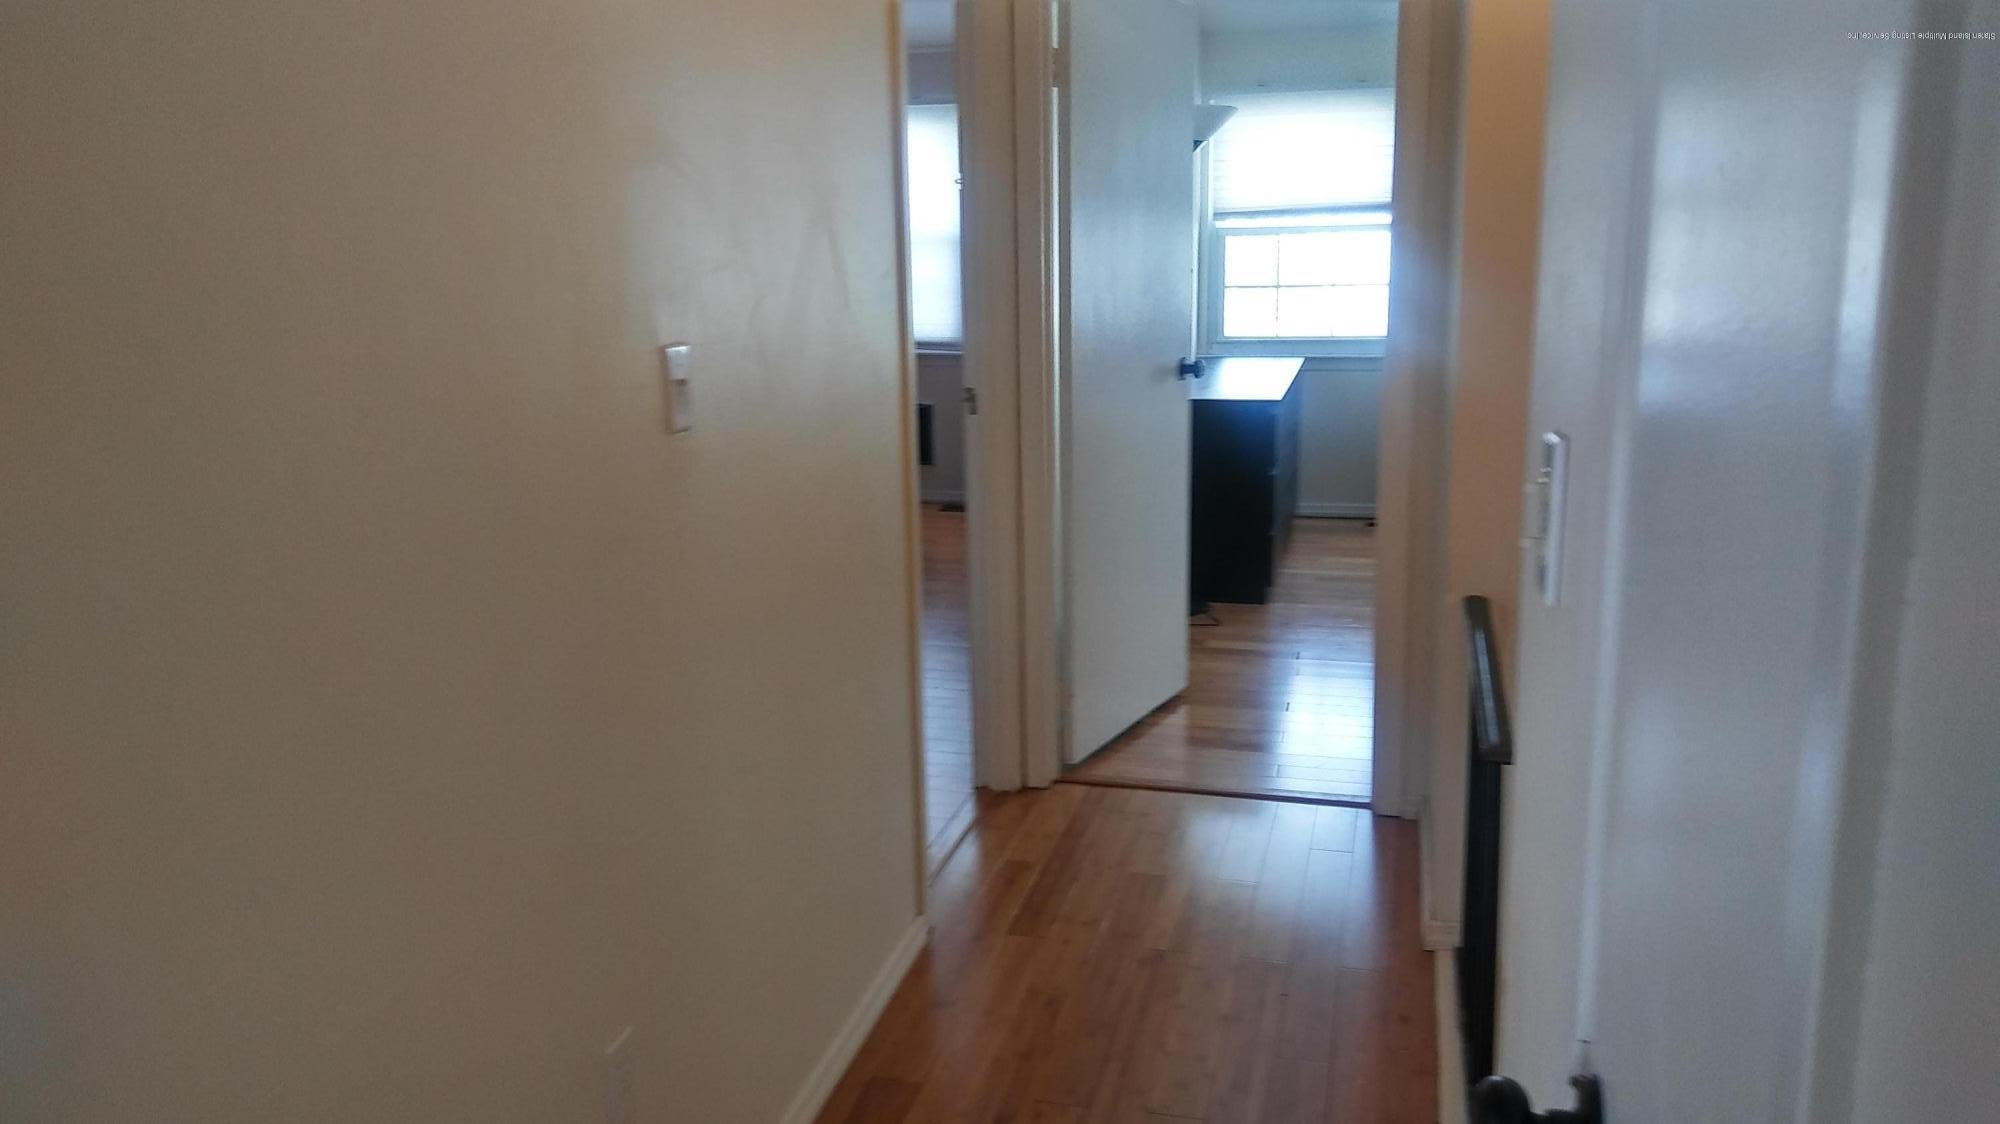 Single Family - Attached 32 Barclay Circle  Staten Island, NY 10312, MLS-1131210-12